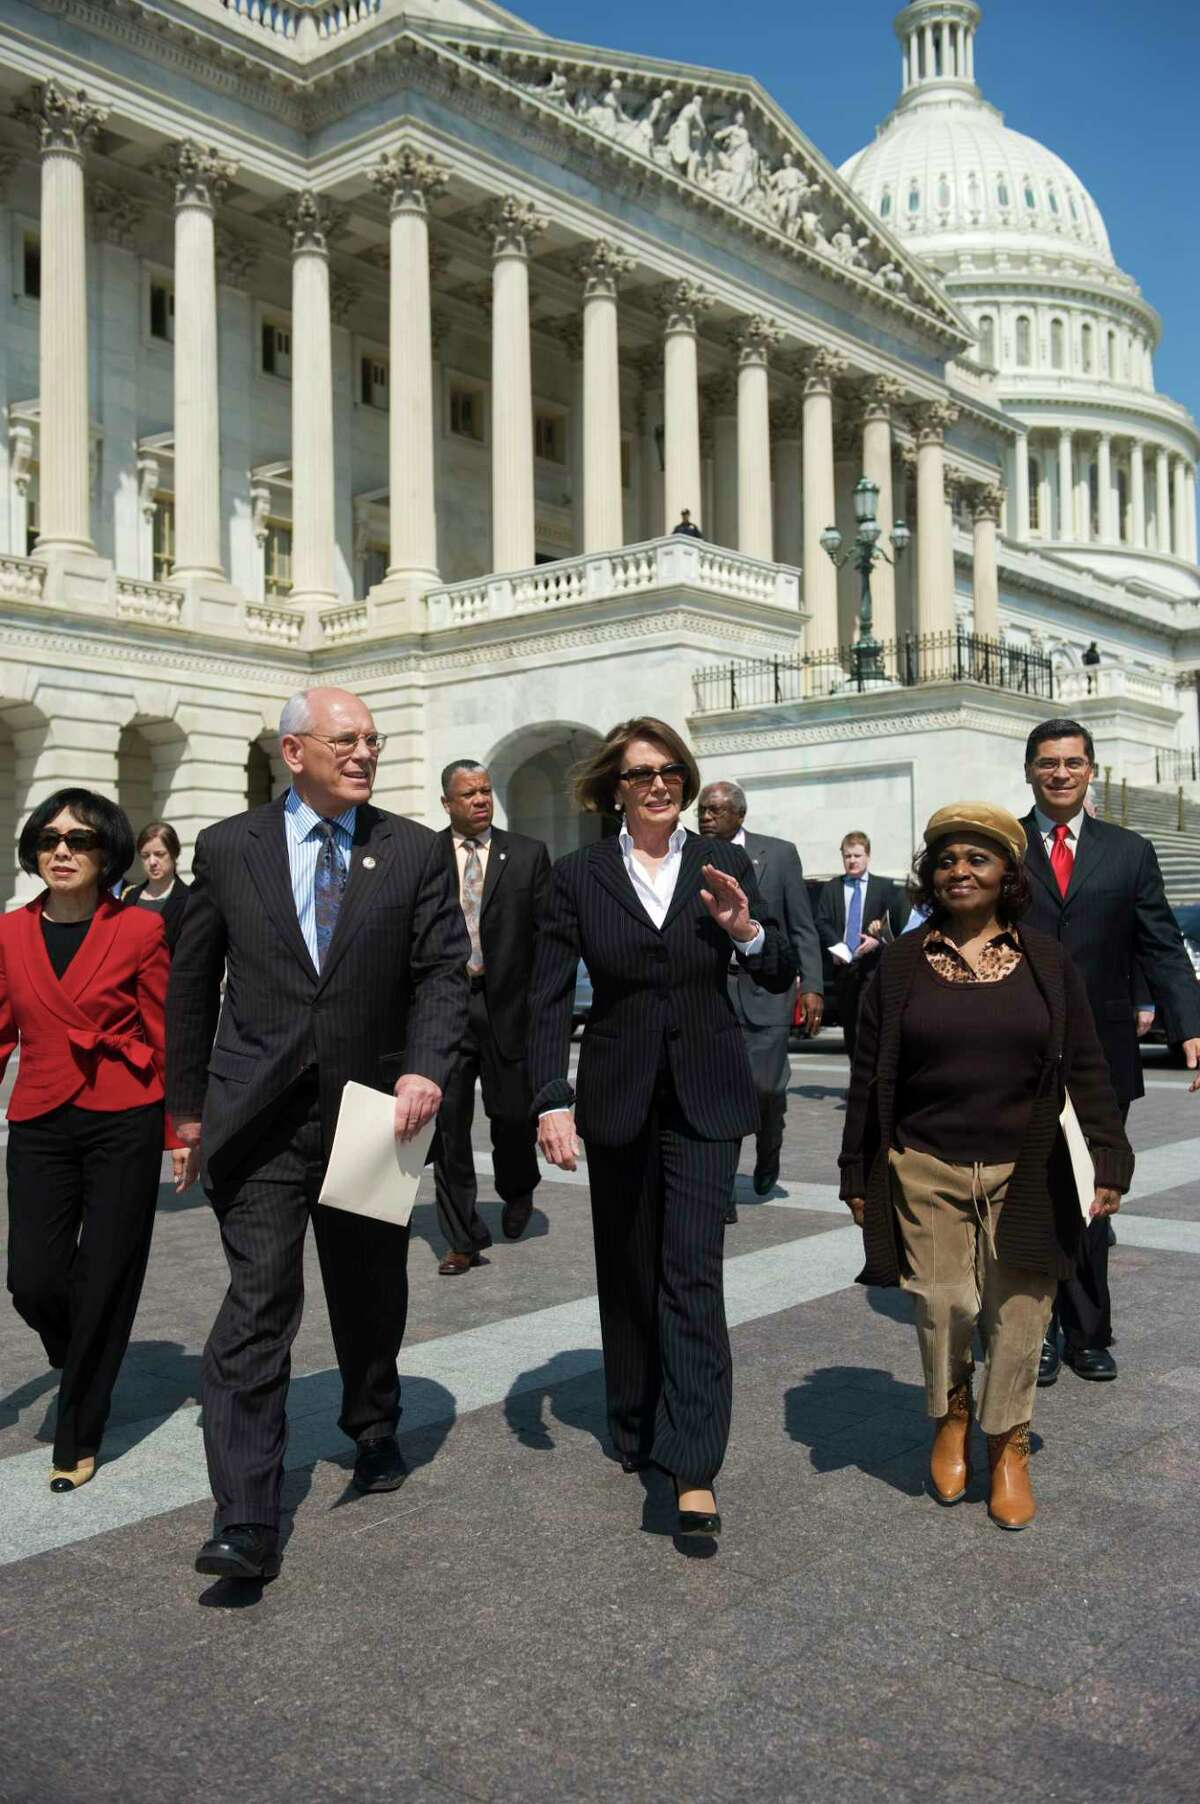 UNITED STATES - APRIL 15: From left, Reps. Doris Matsui, D-Calif., Paul Tonko, D-N.Y., House Minority Leader Nancy Pelosi, D-Calif., Assistant Leader James Clyburn, D-S.C., Josephine Ball-Sivell, a retiree living on Social Security and Medicare, and Democratic Caucus Vice Chair Xavier Becerra, D-Calif., make their way to a news conference at the house triangle to contend that the House Republican budget would